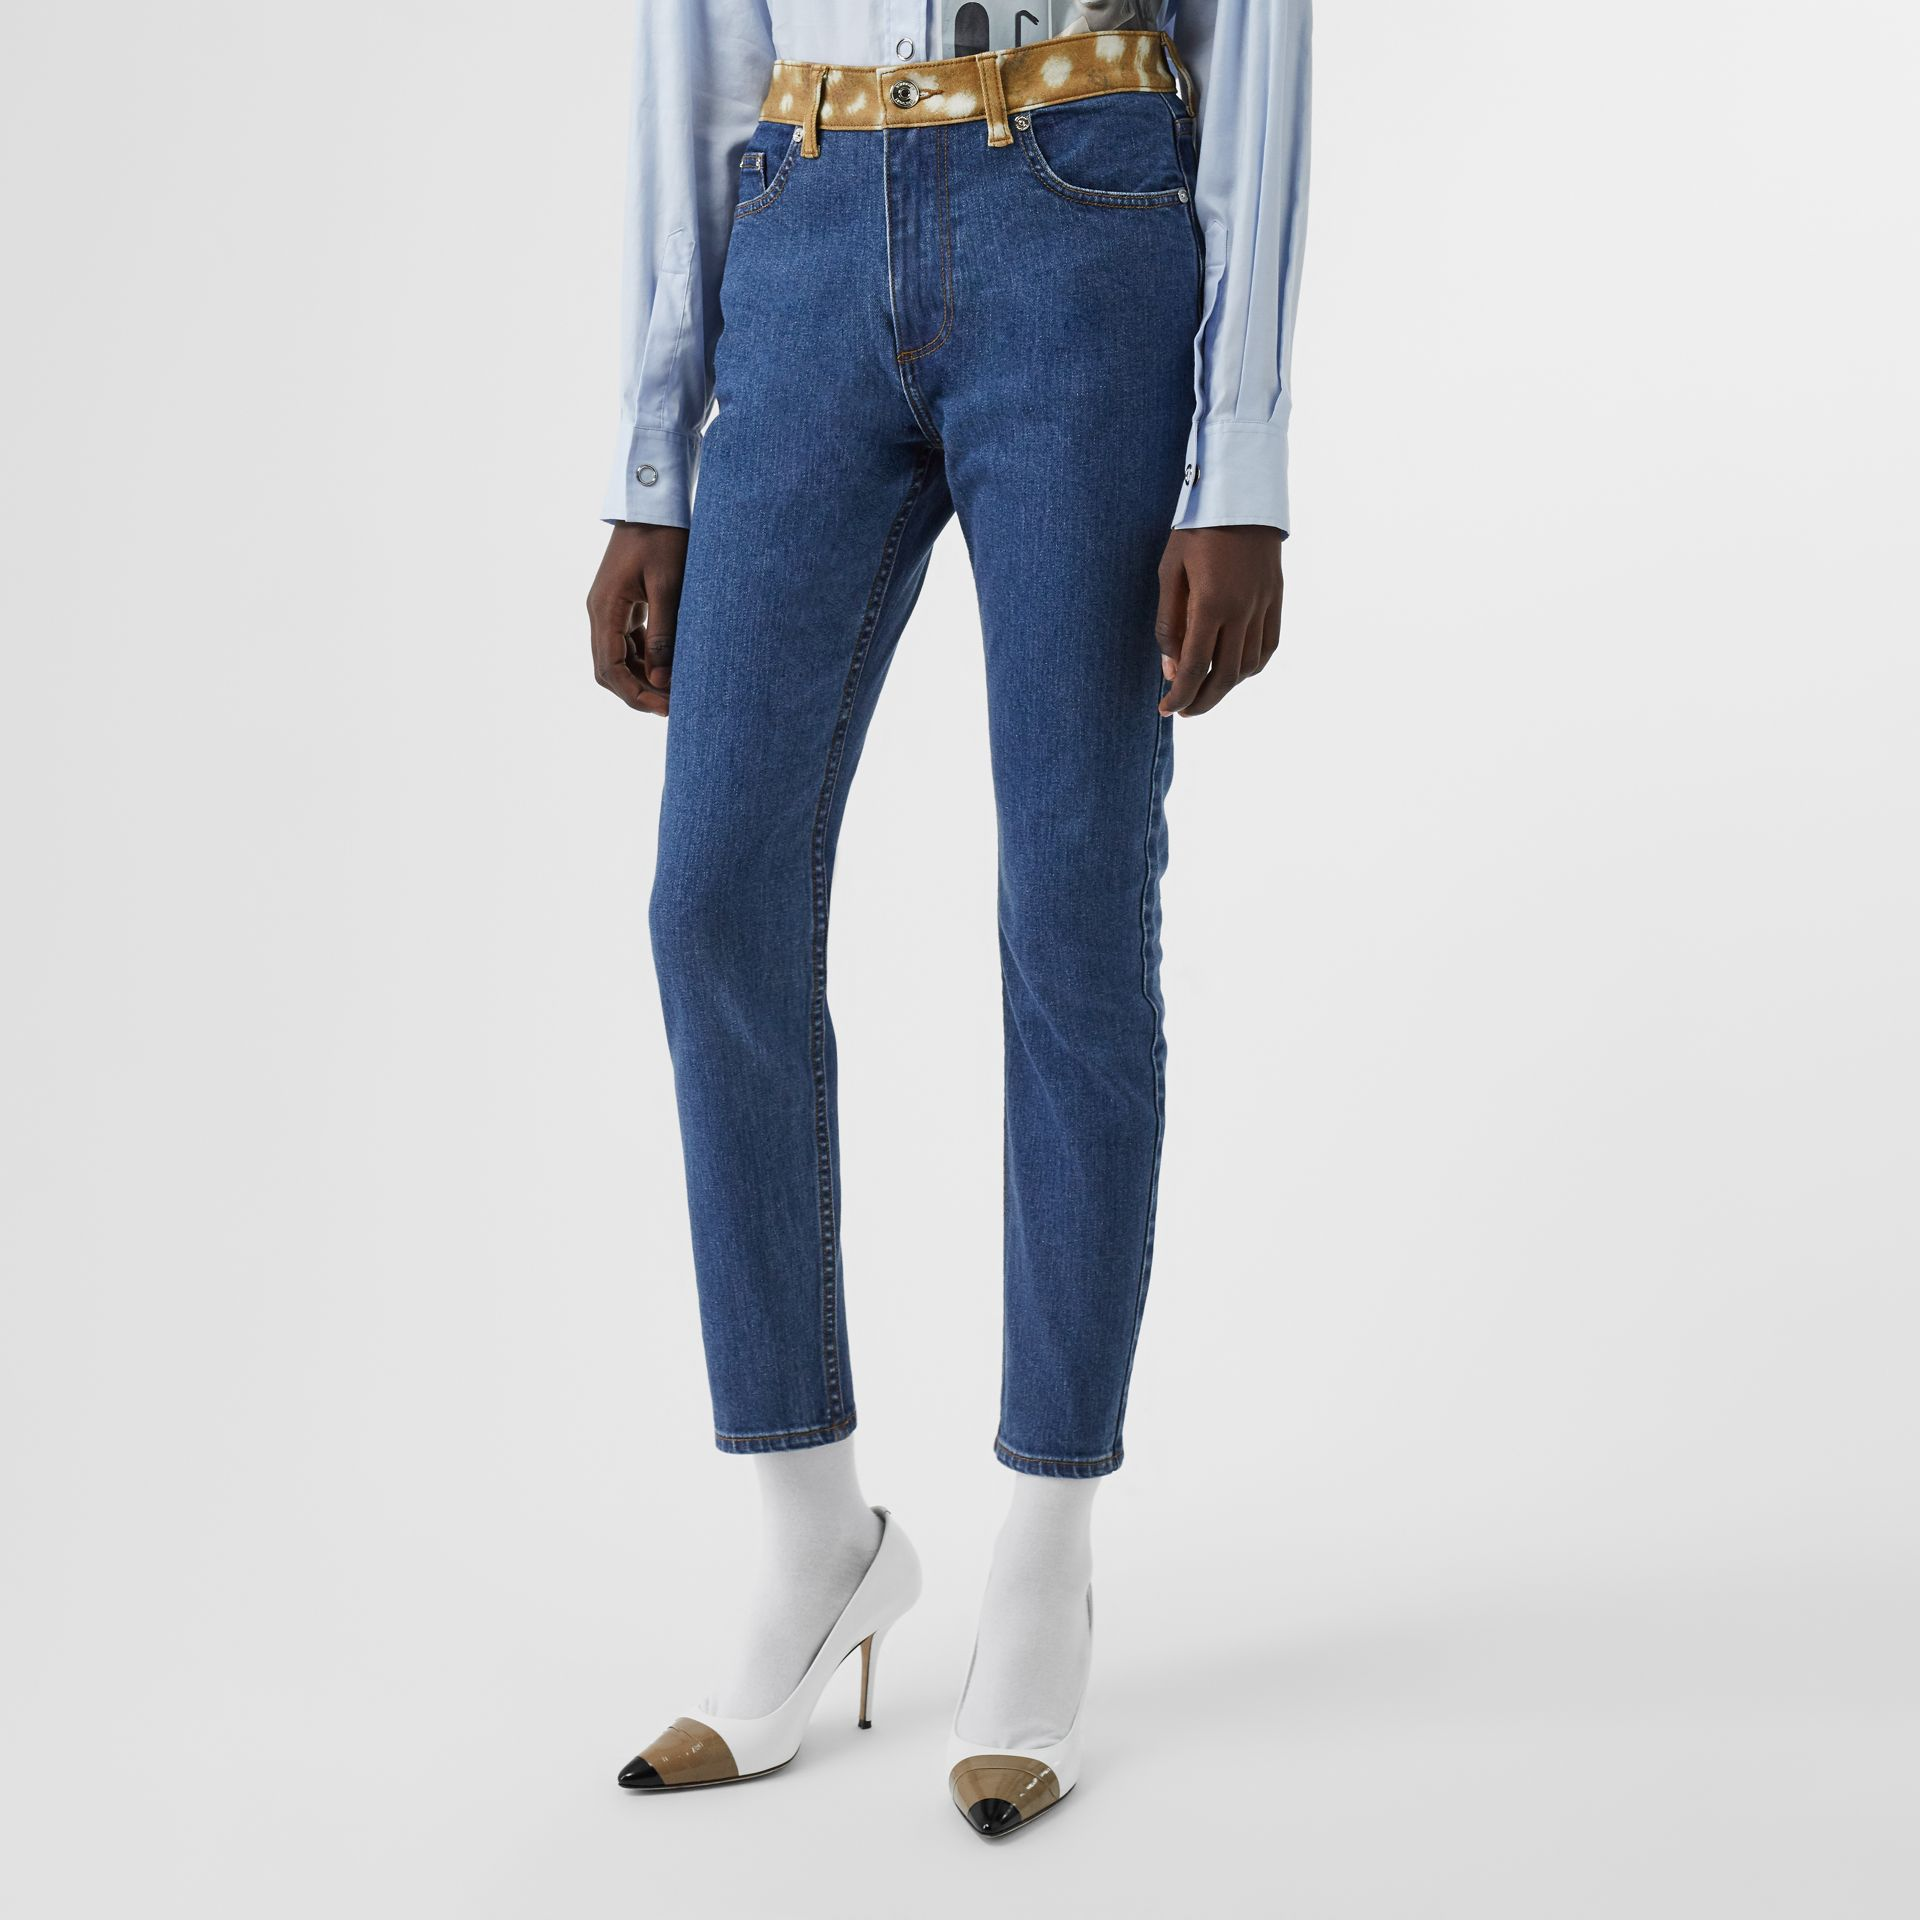 Skinny Fit Deer Print Trim Japanese Denim Jeans in Mid Blue - Women | Burberry - gallery image 3